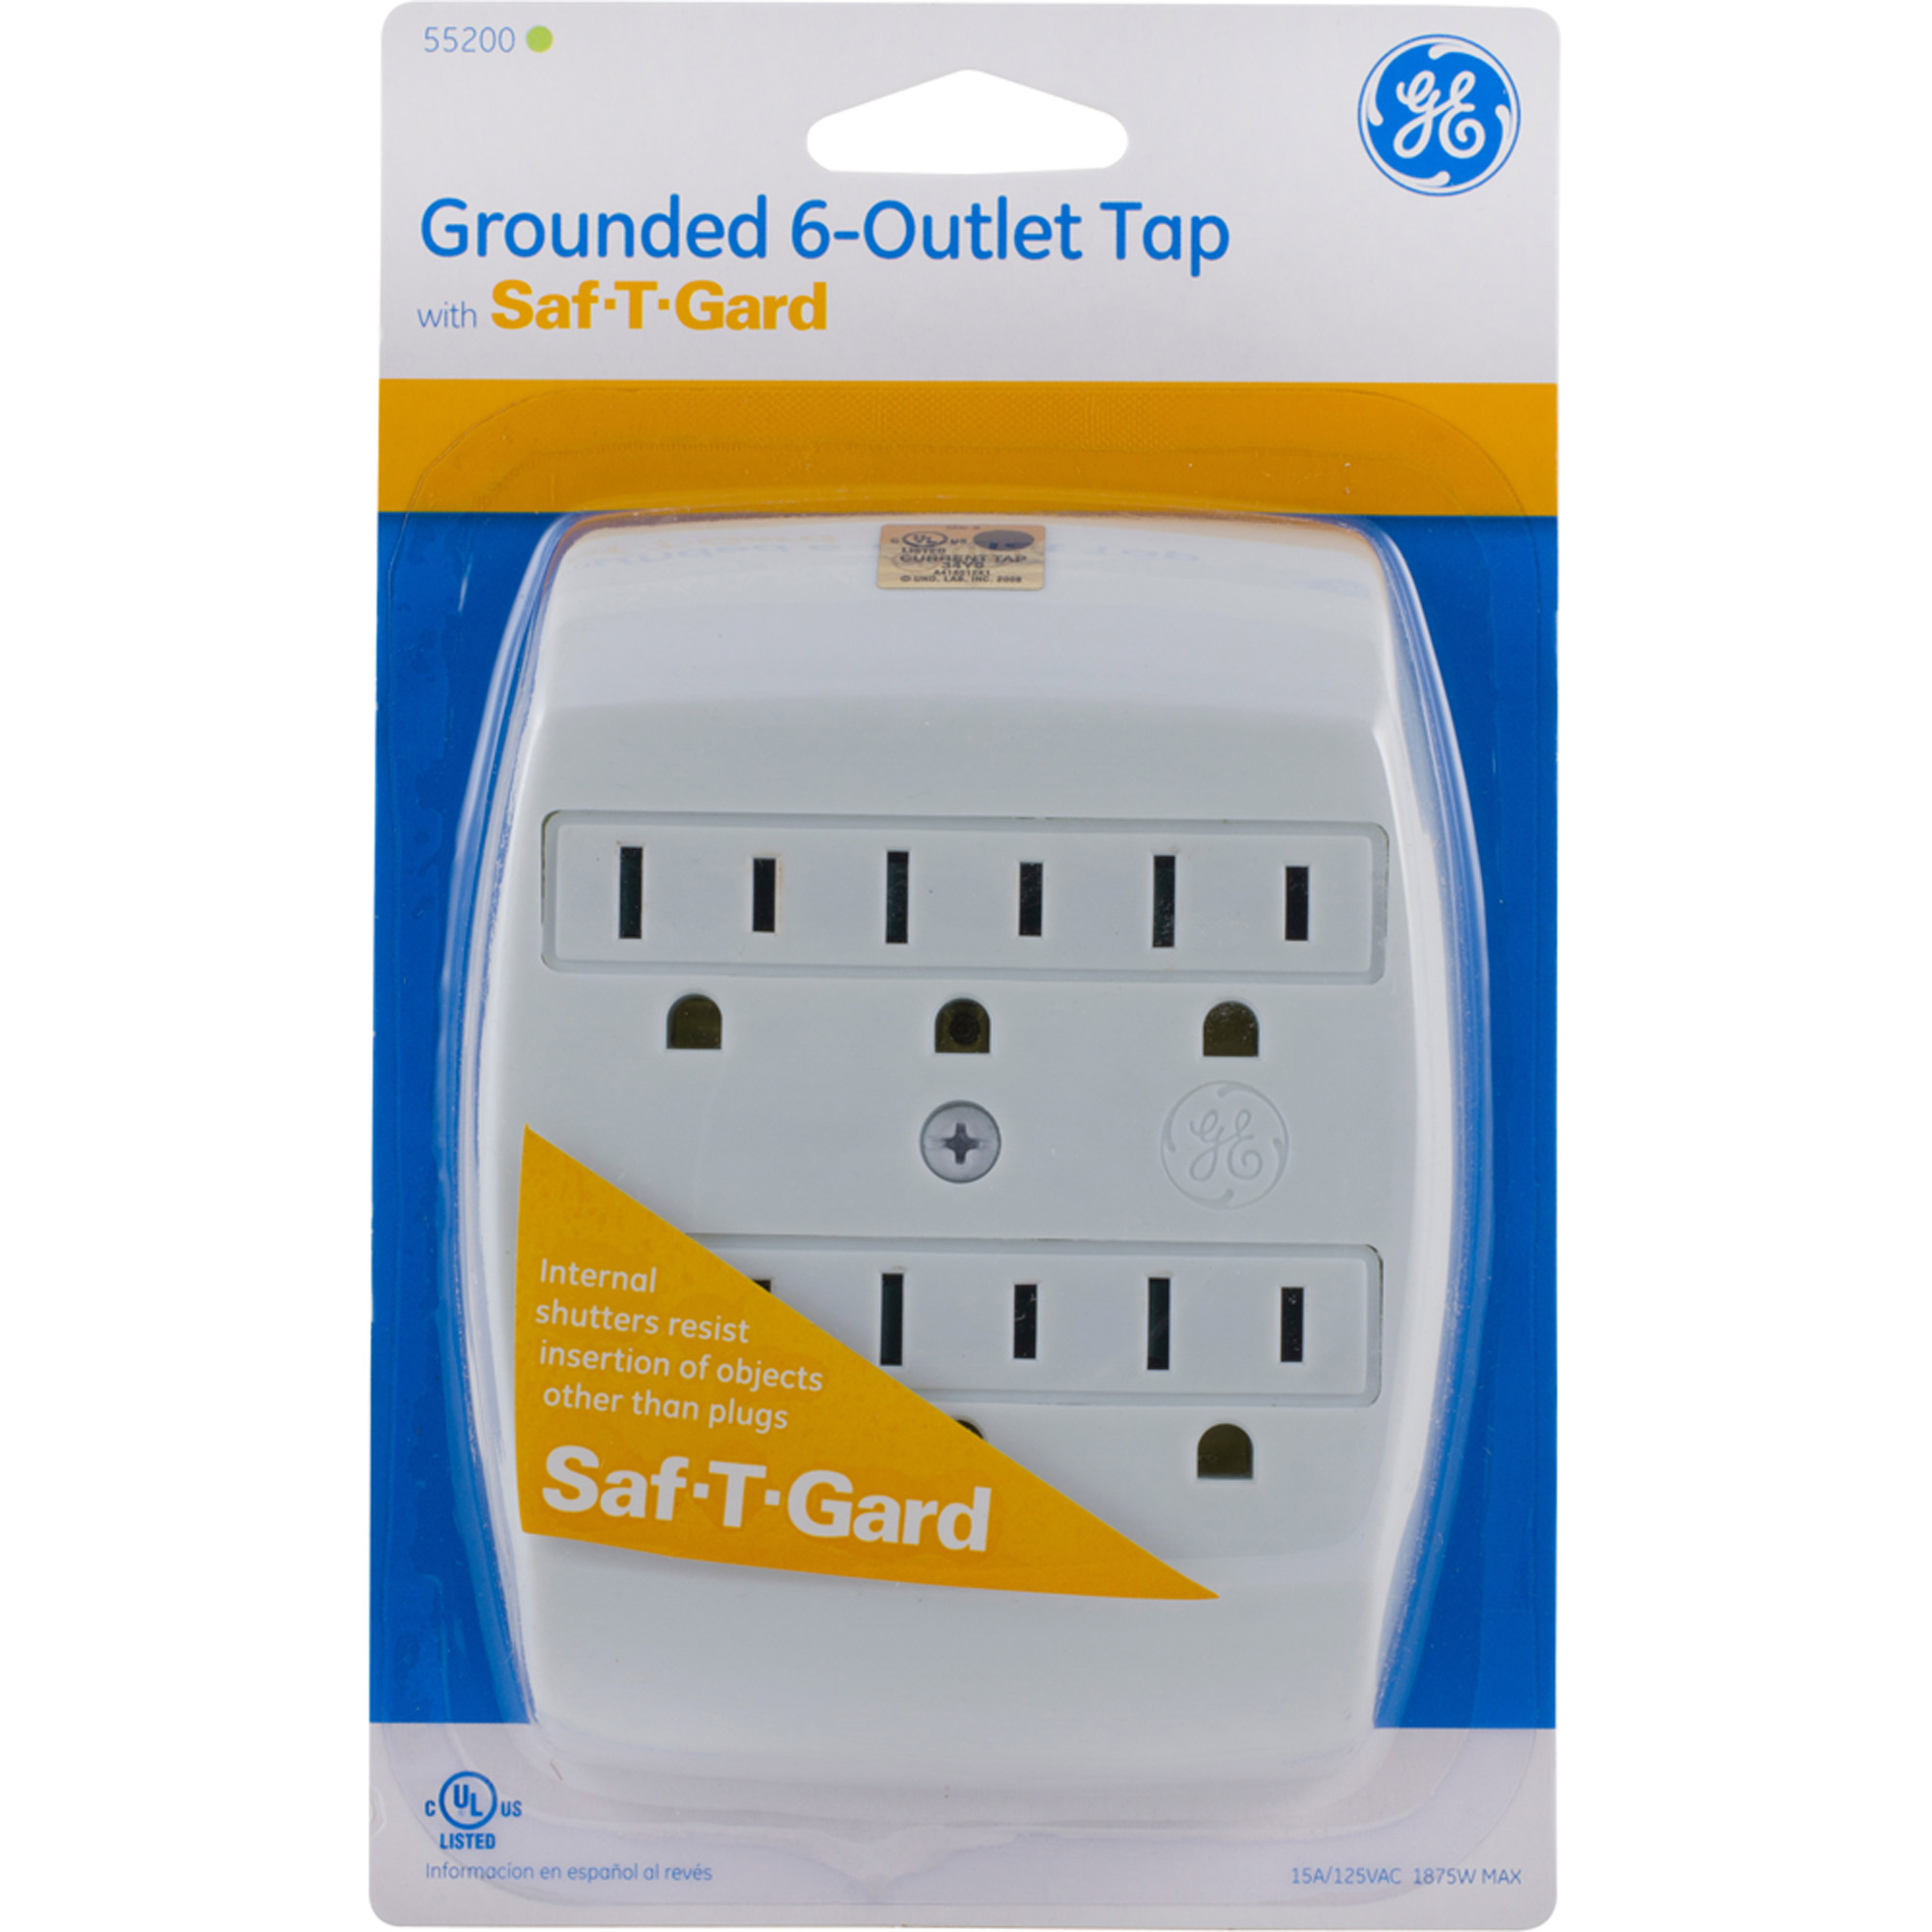 6 Outlet Grounded Tap with Saf T Gard in Wall, 15A/125VAC, White